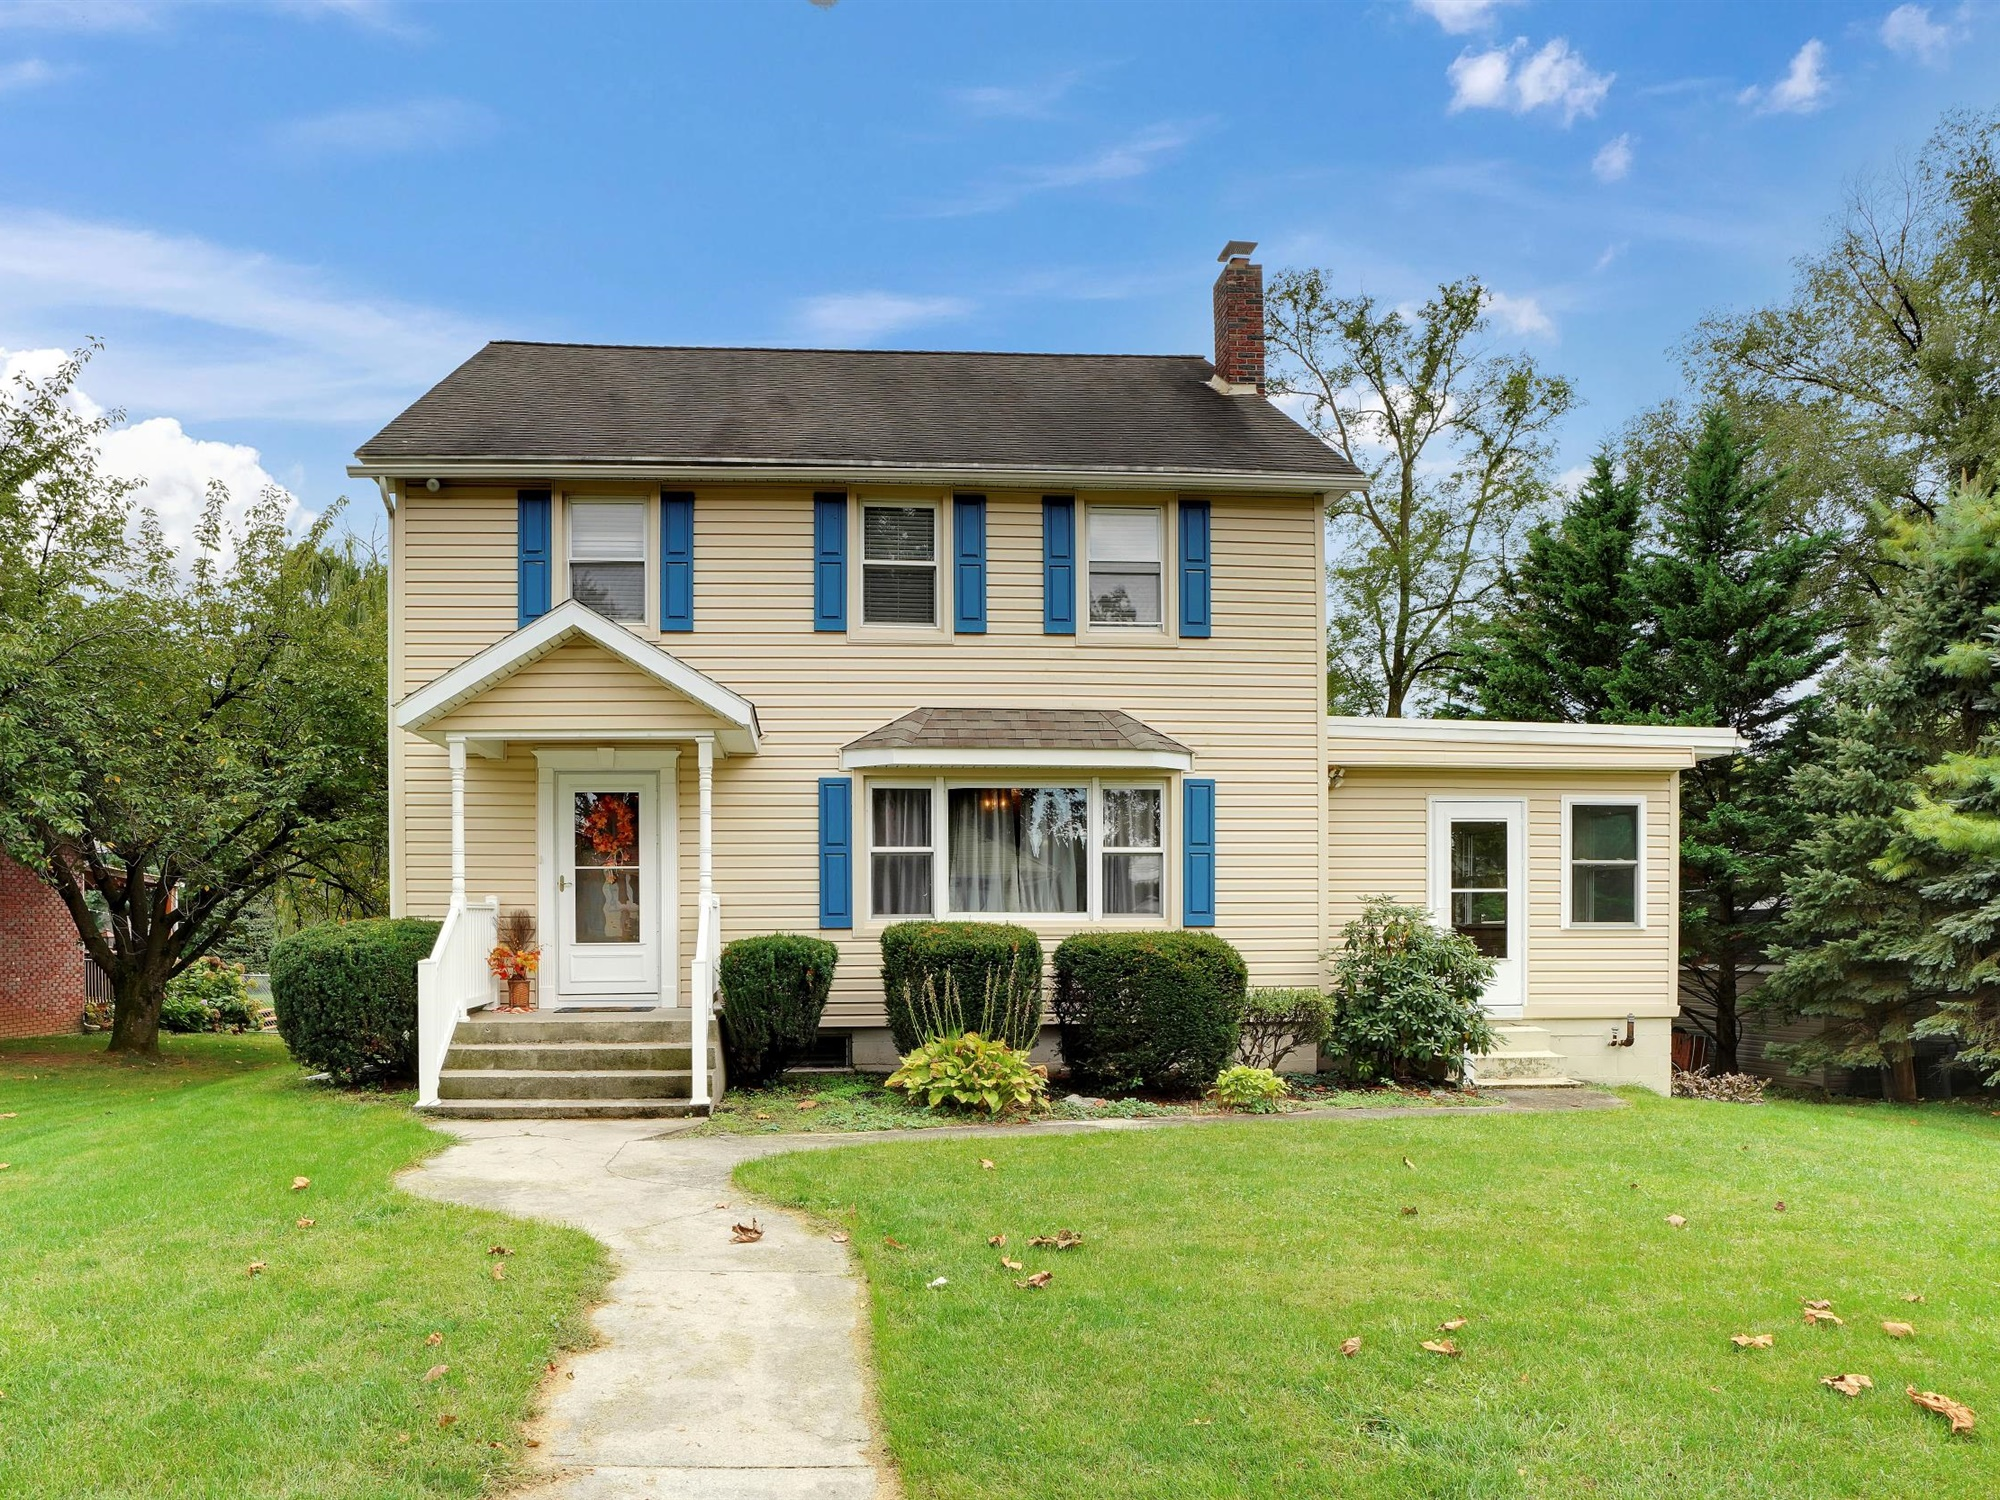 2022 Kline St - street view of this charming single family home